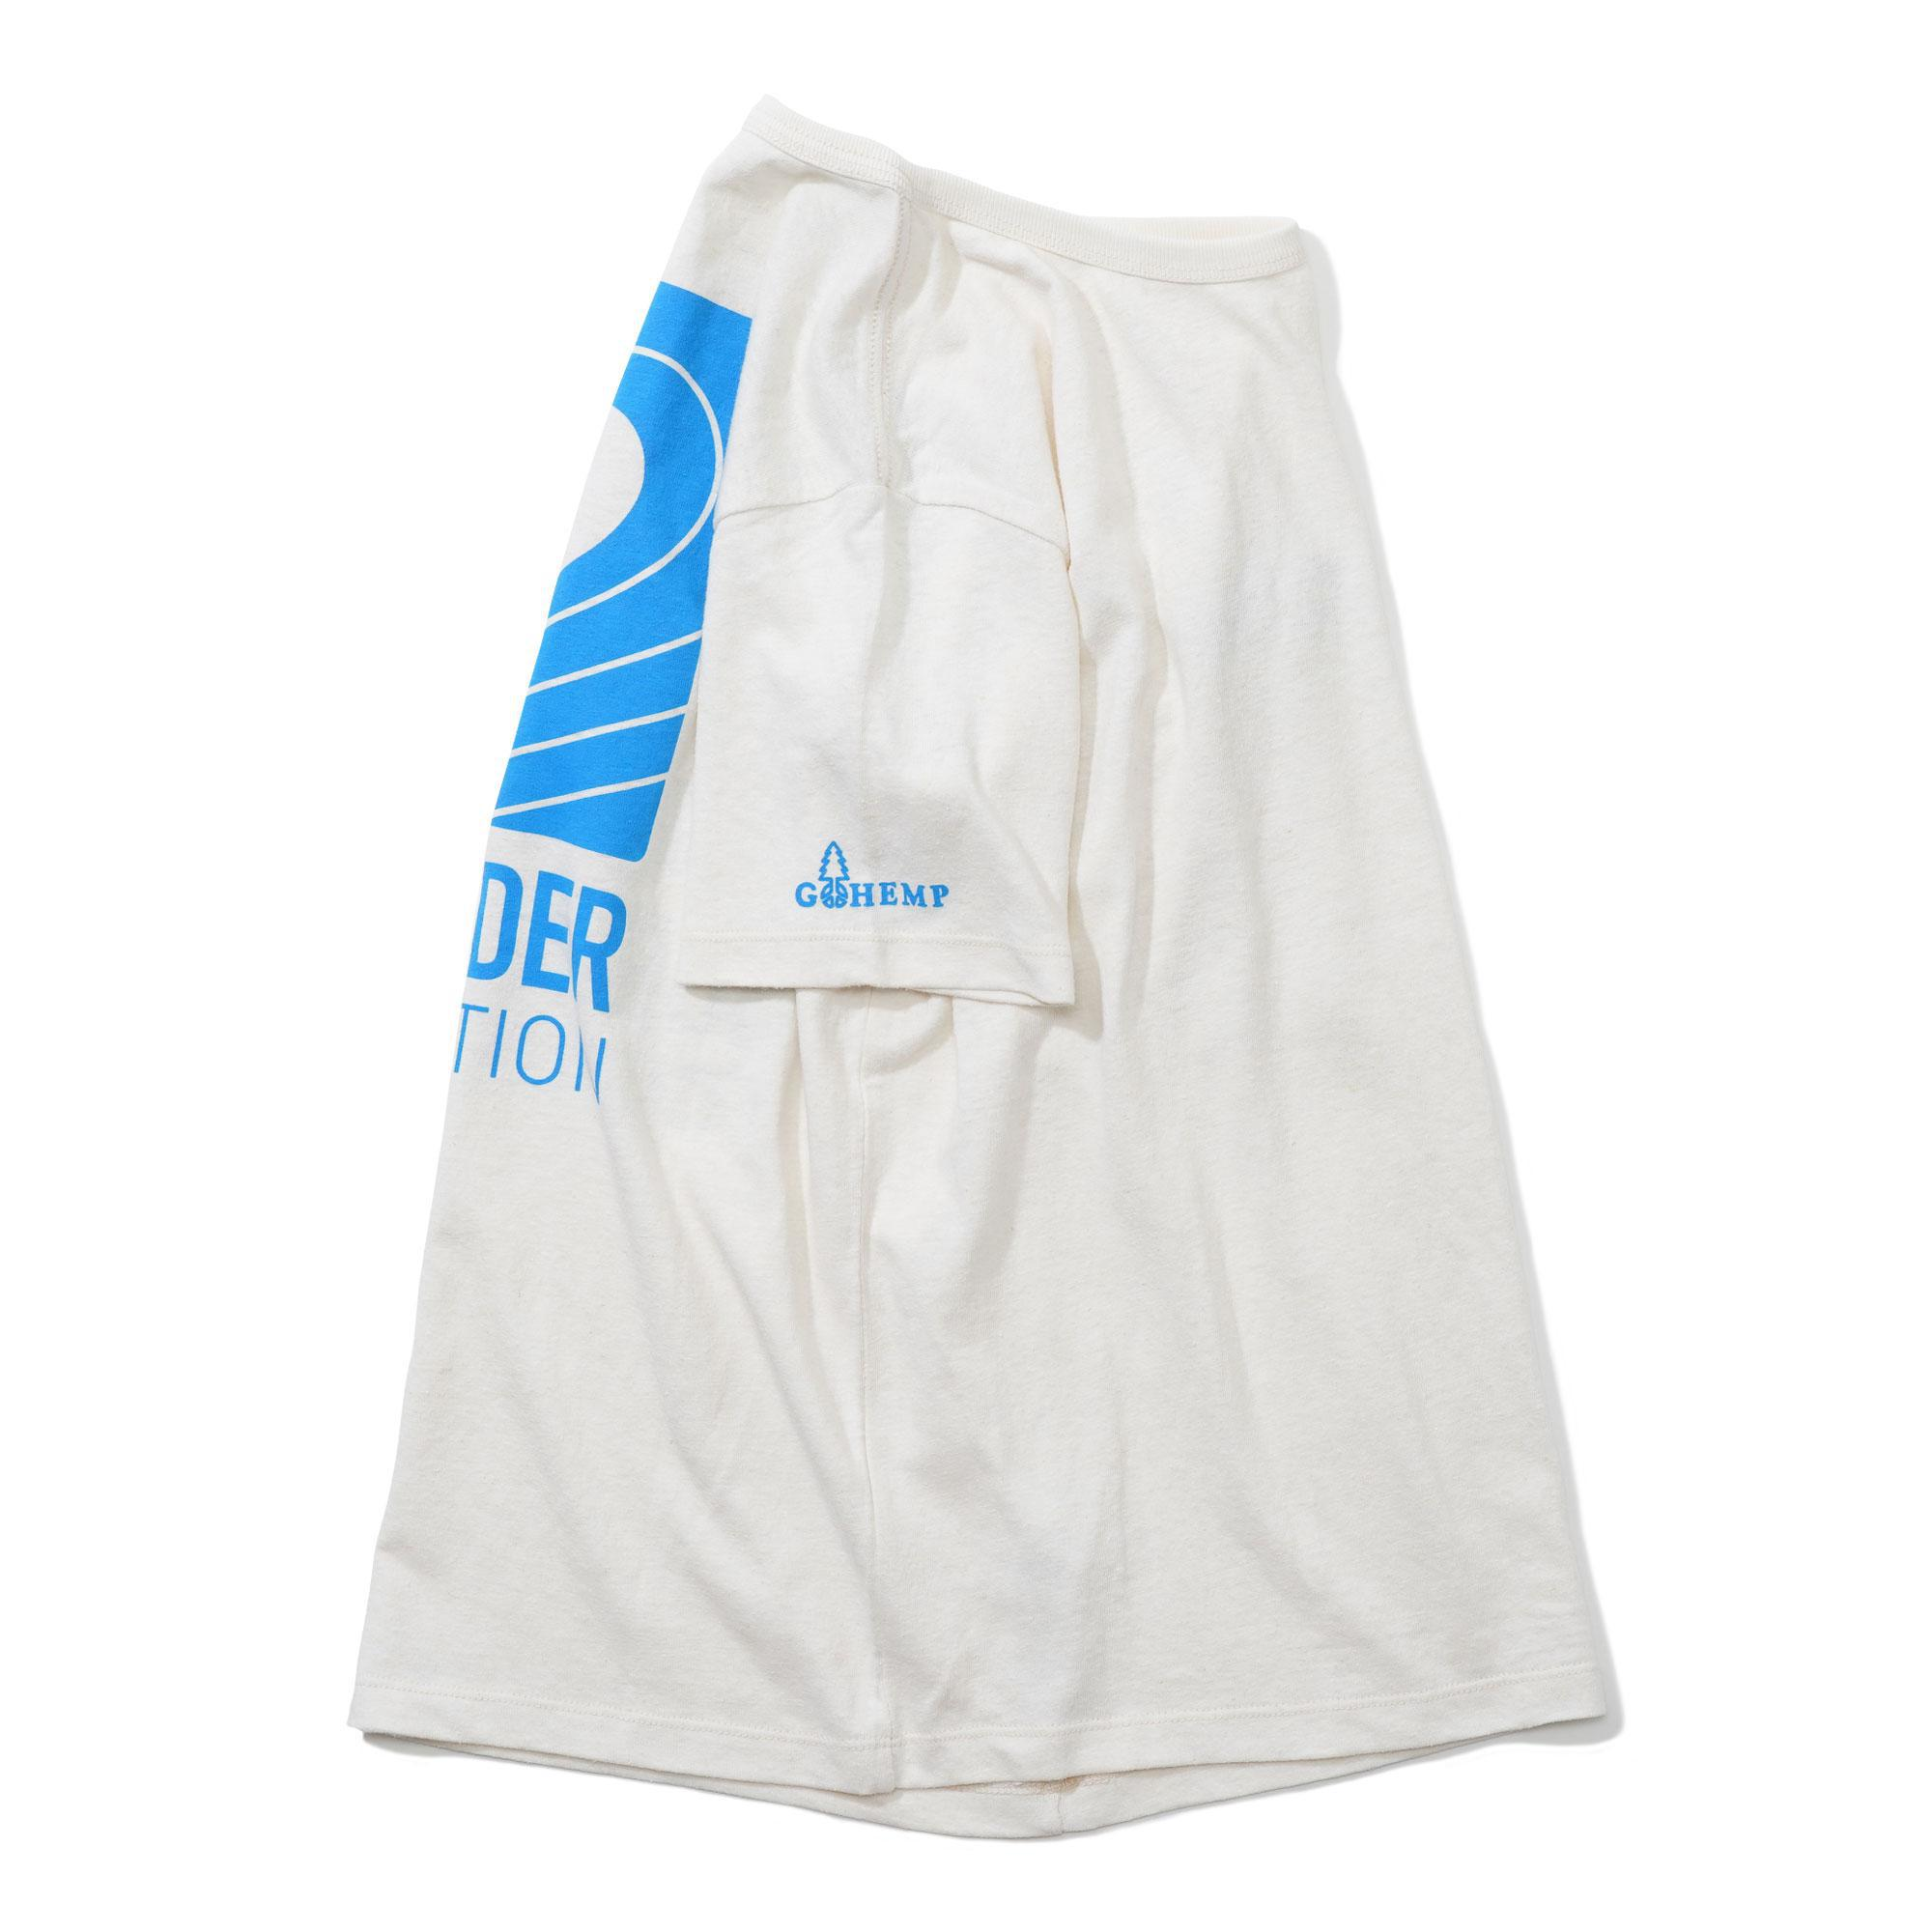 SURFRIDER FOUNDATION<br>LOGO TEE